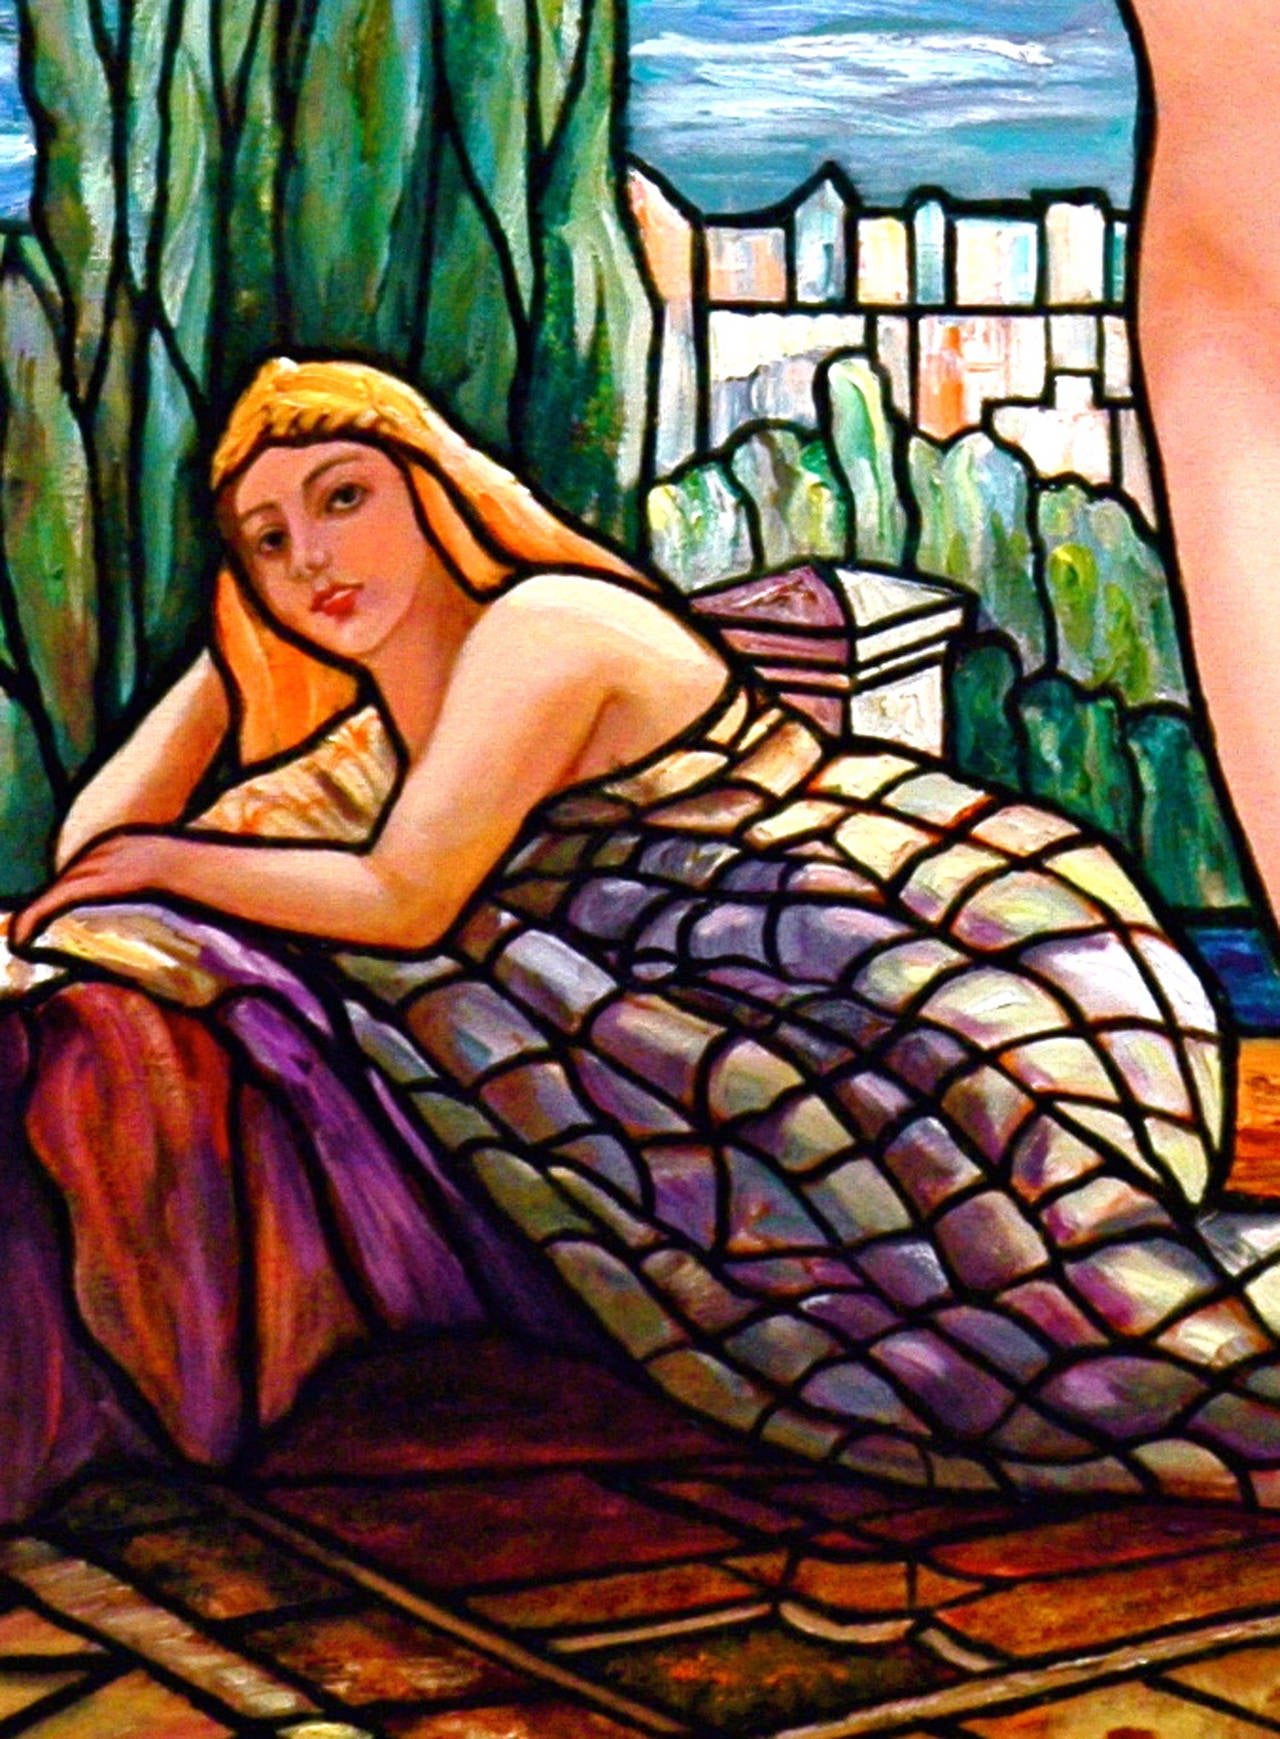 Tiffany Style Nude with Wisterias - Contemporary Painting by Kristina Nemethy